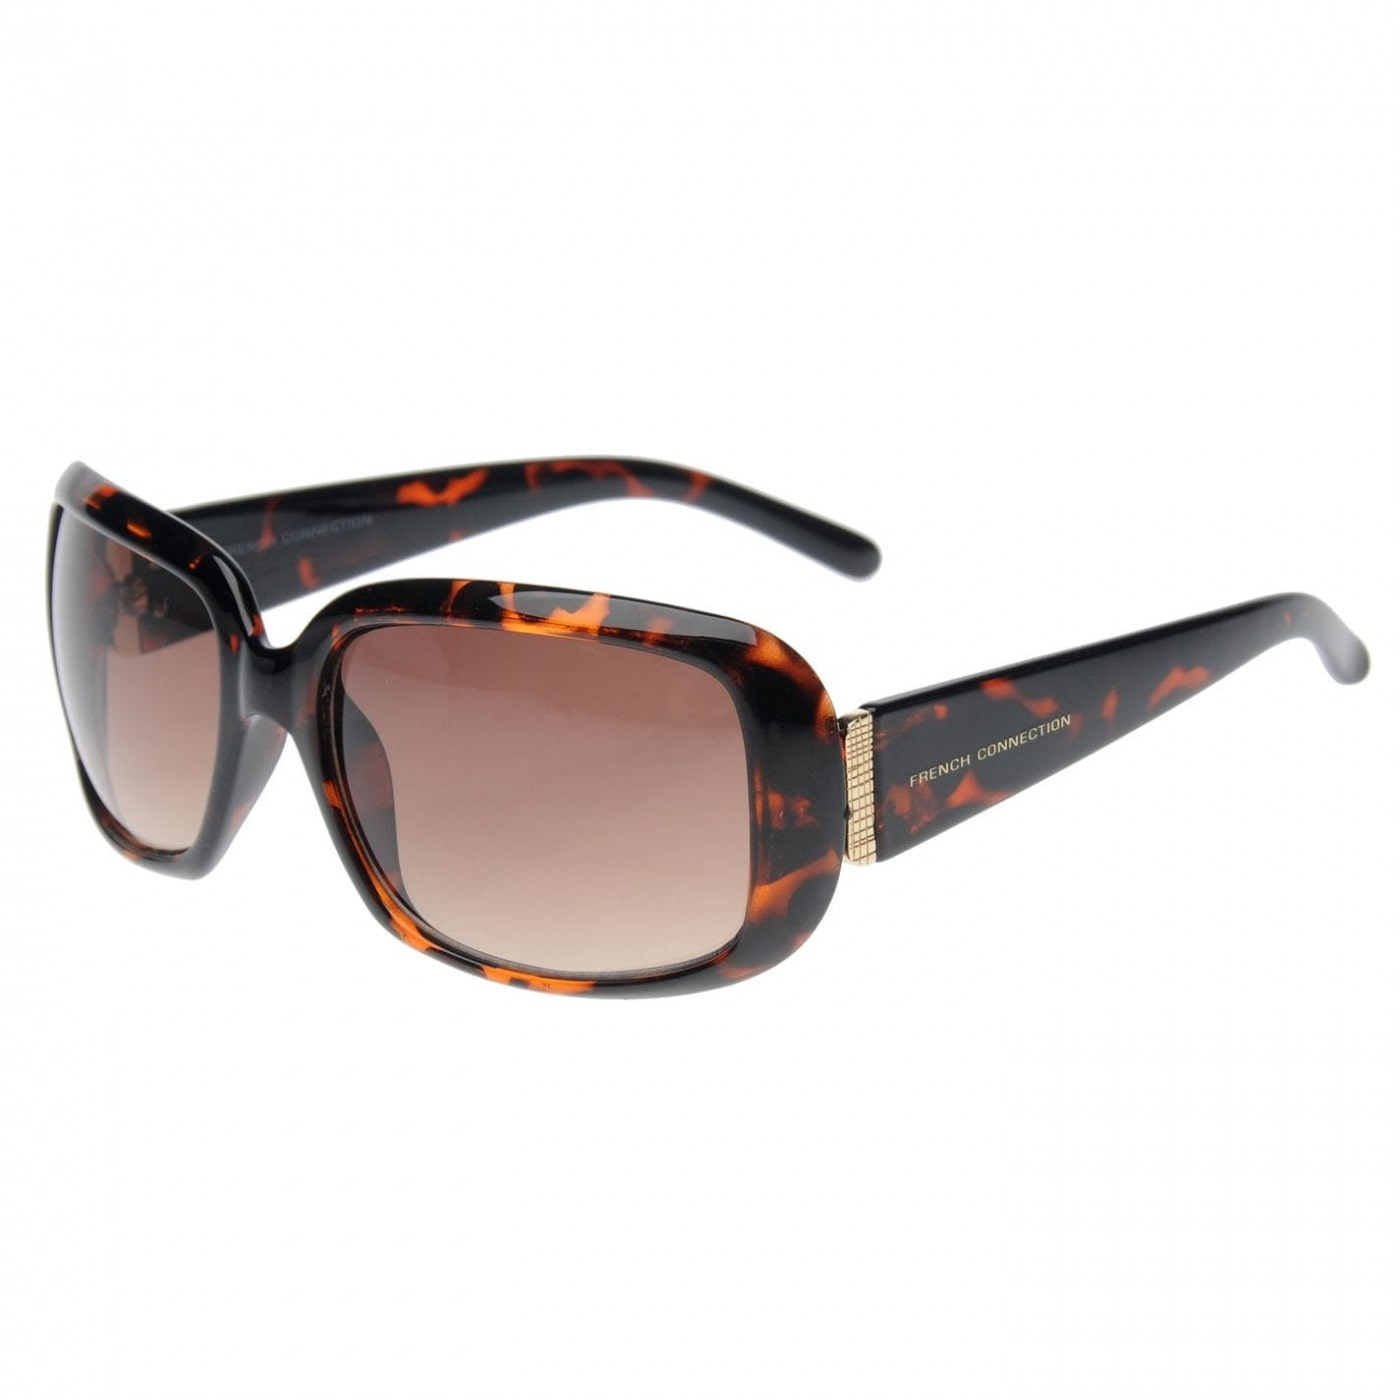 French Connection Sunglasses Ladies